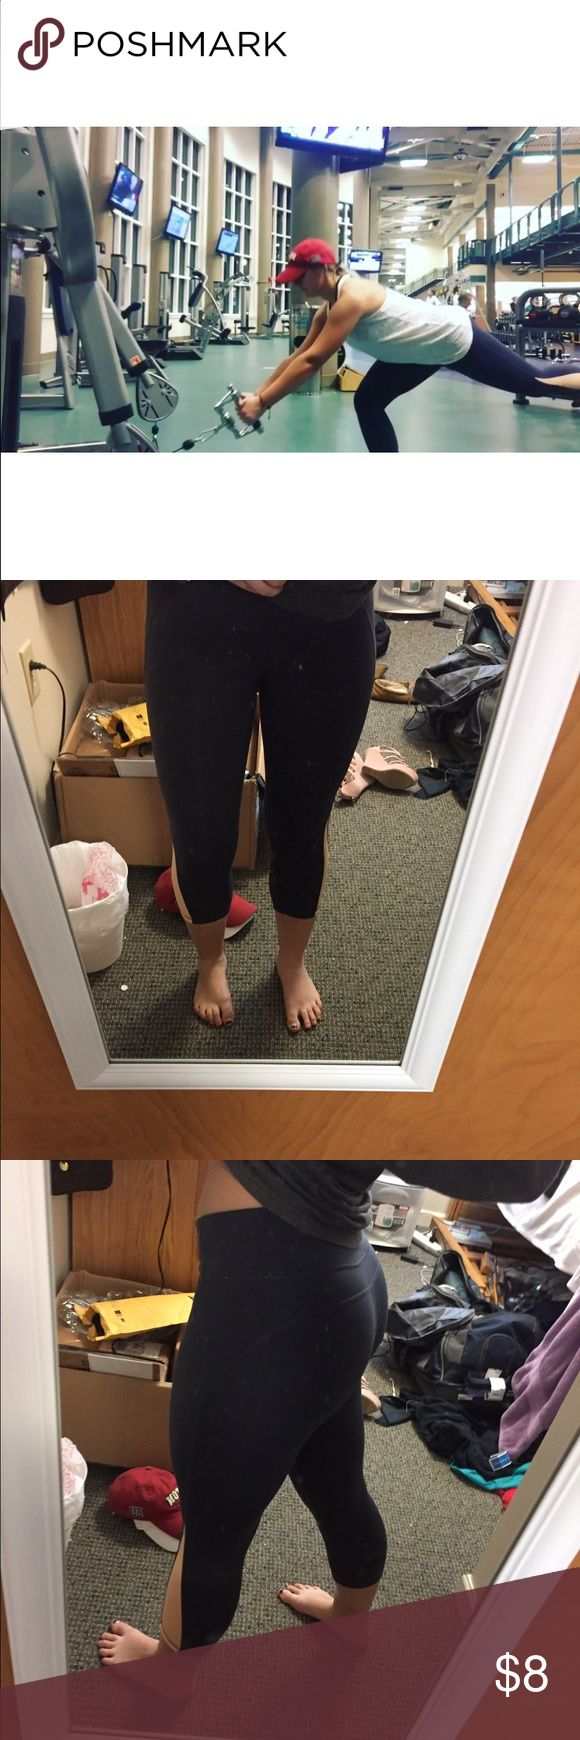 Old navy activewear leggings Super cute, comfy, stretchy, not see-through! Perfect for the gym or lounging. Fits size S-M Old Navy Pants Leggings